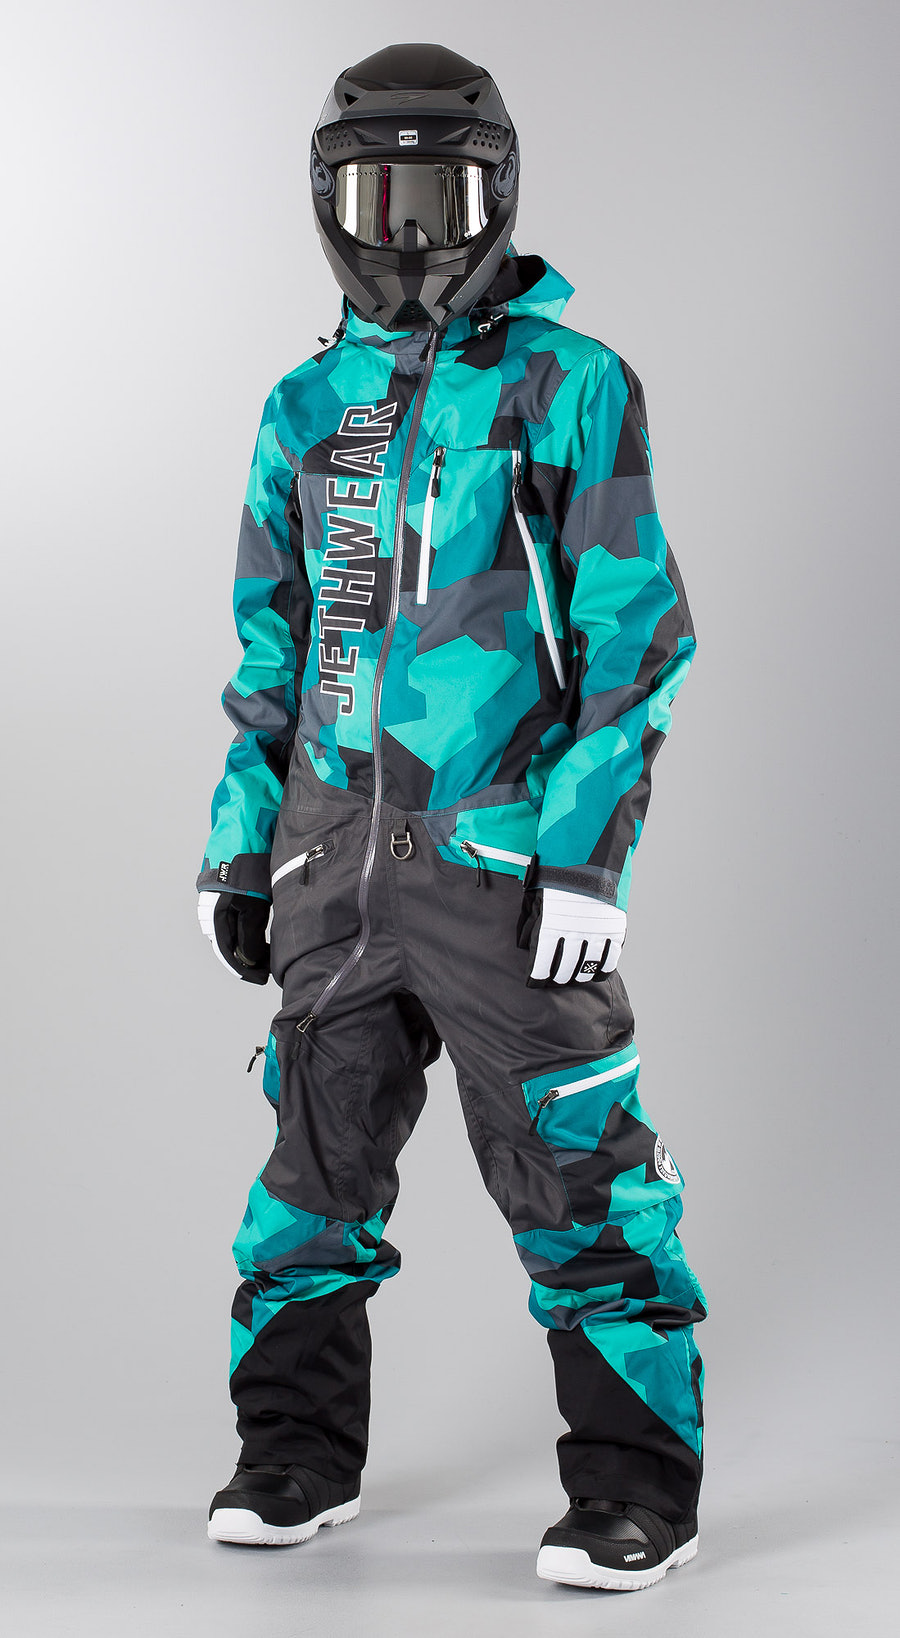 Jethwear The One  Teal Camo Snowmobile Bekleidung Multi